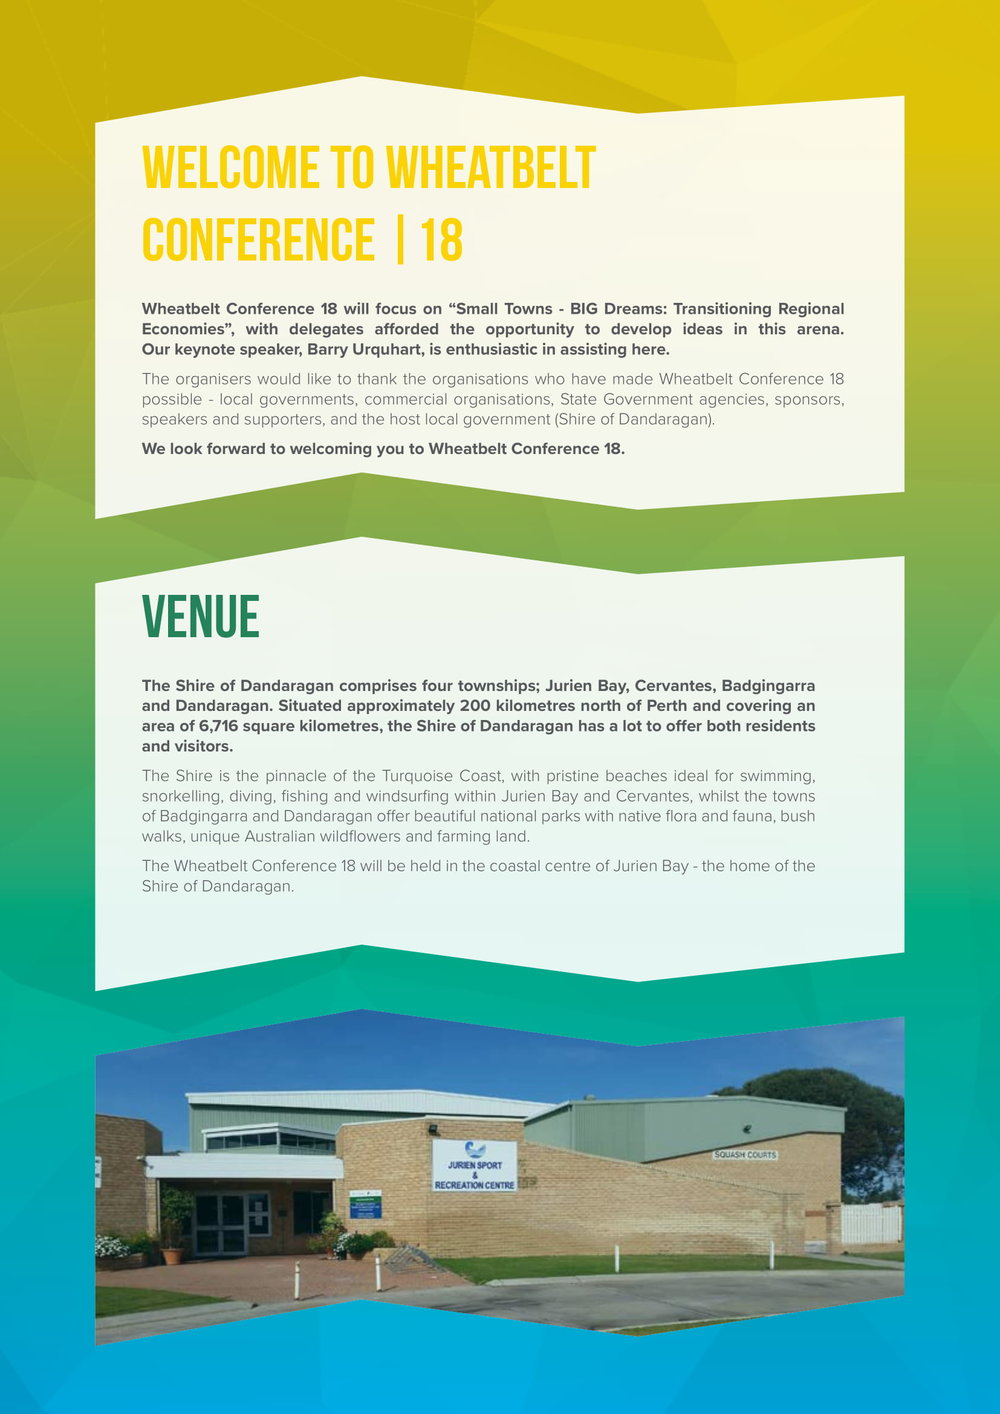 Wheatbelt 18 - Conference Program-2.jpg